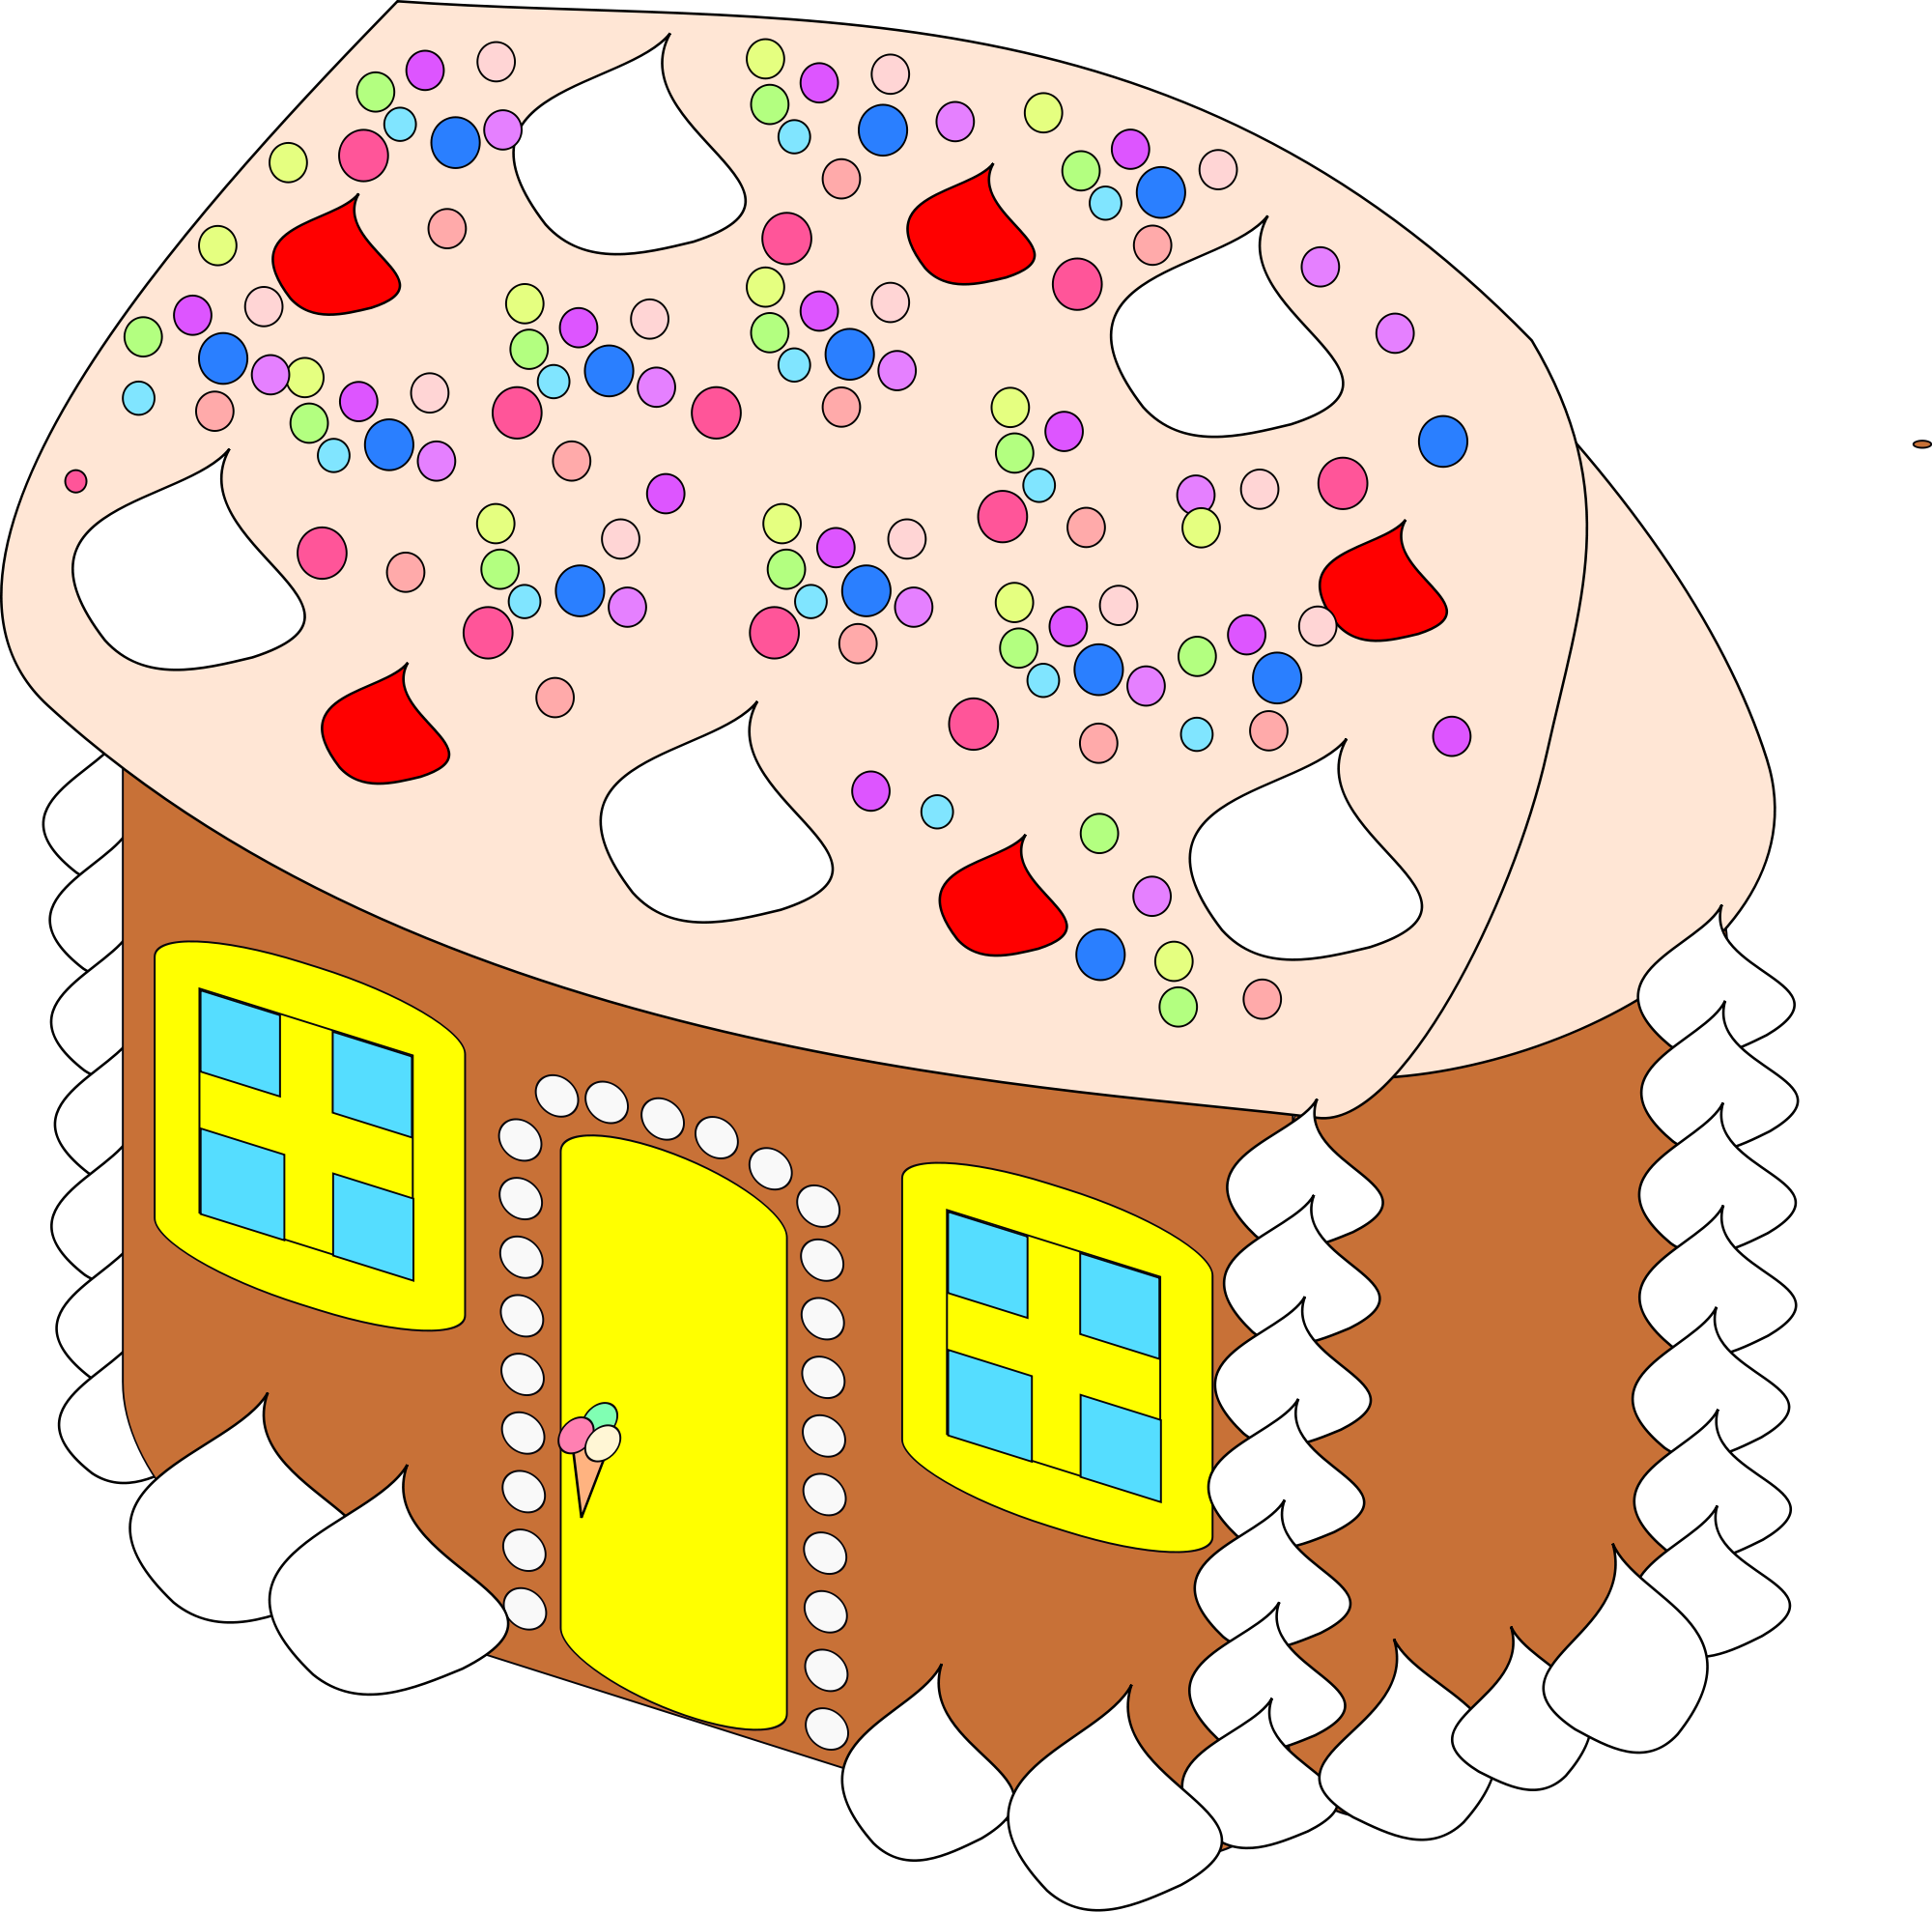 Hansel and gretel house clipart vector free File:Sweet House.svg - Wikimedia Commons vector free